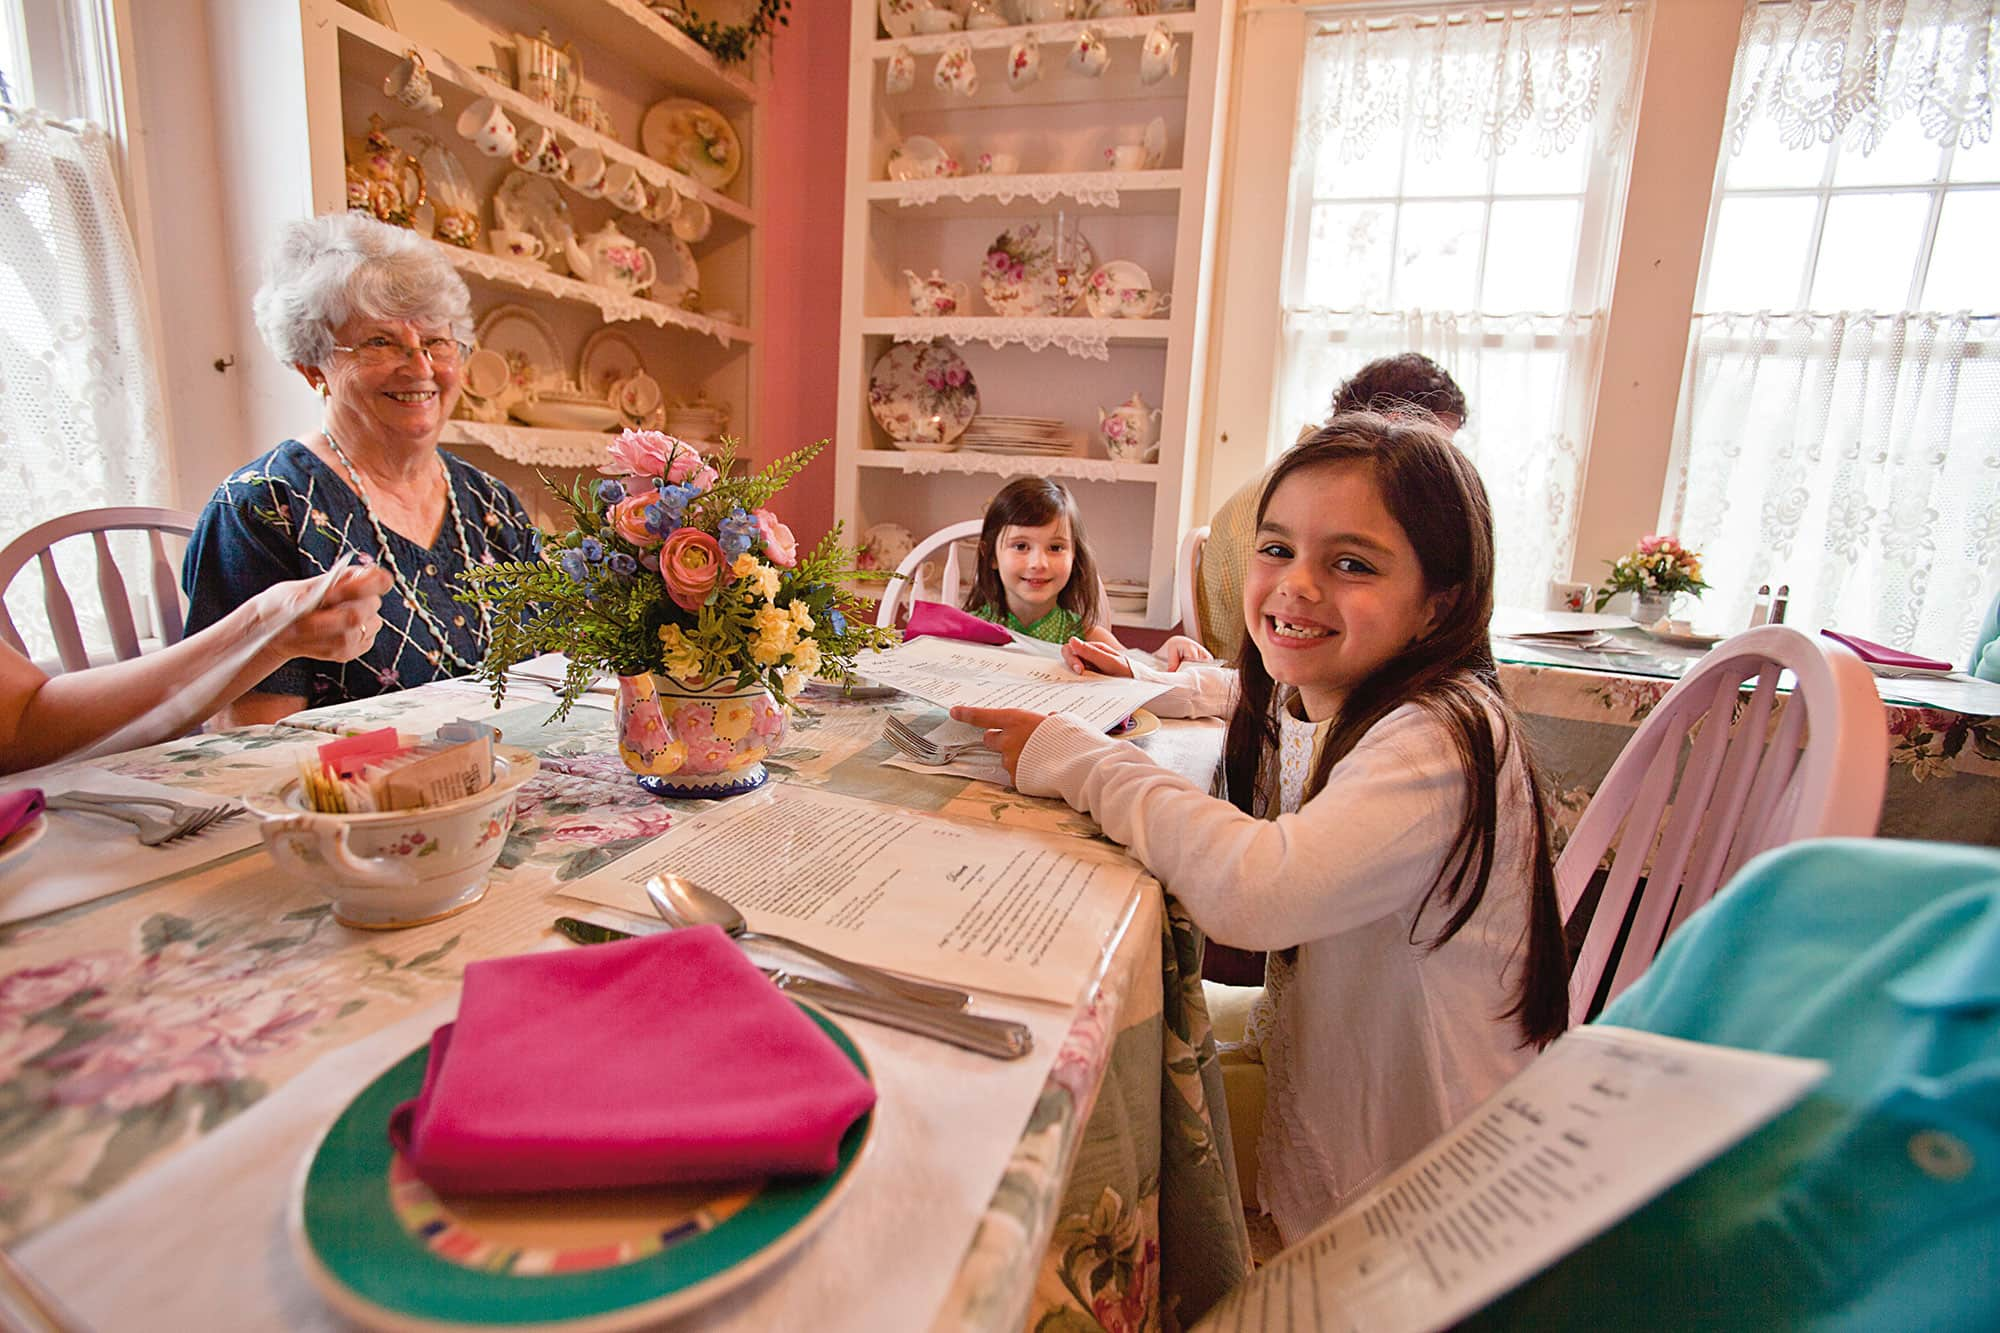 Young girl having lunch with grandma and siblings at Lavender N Lace Tea Room in Lake Alfred, FL